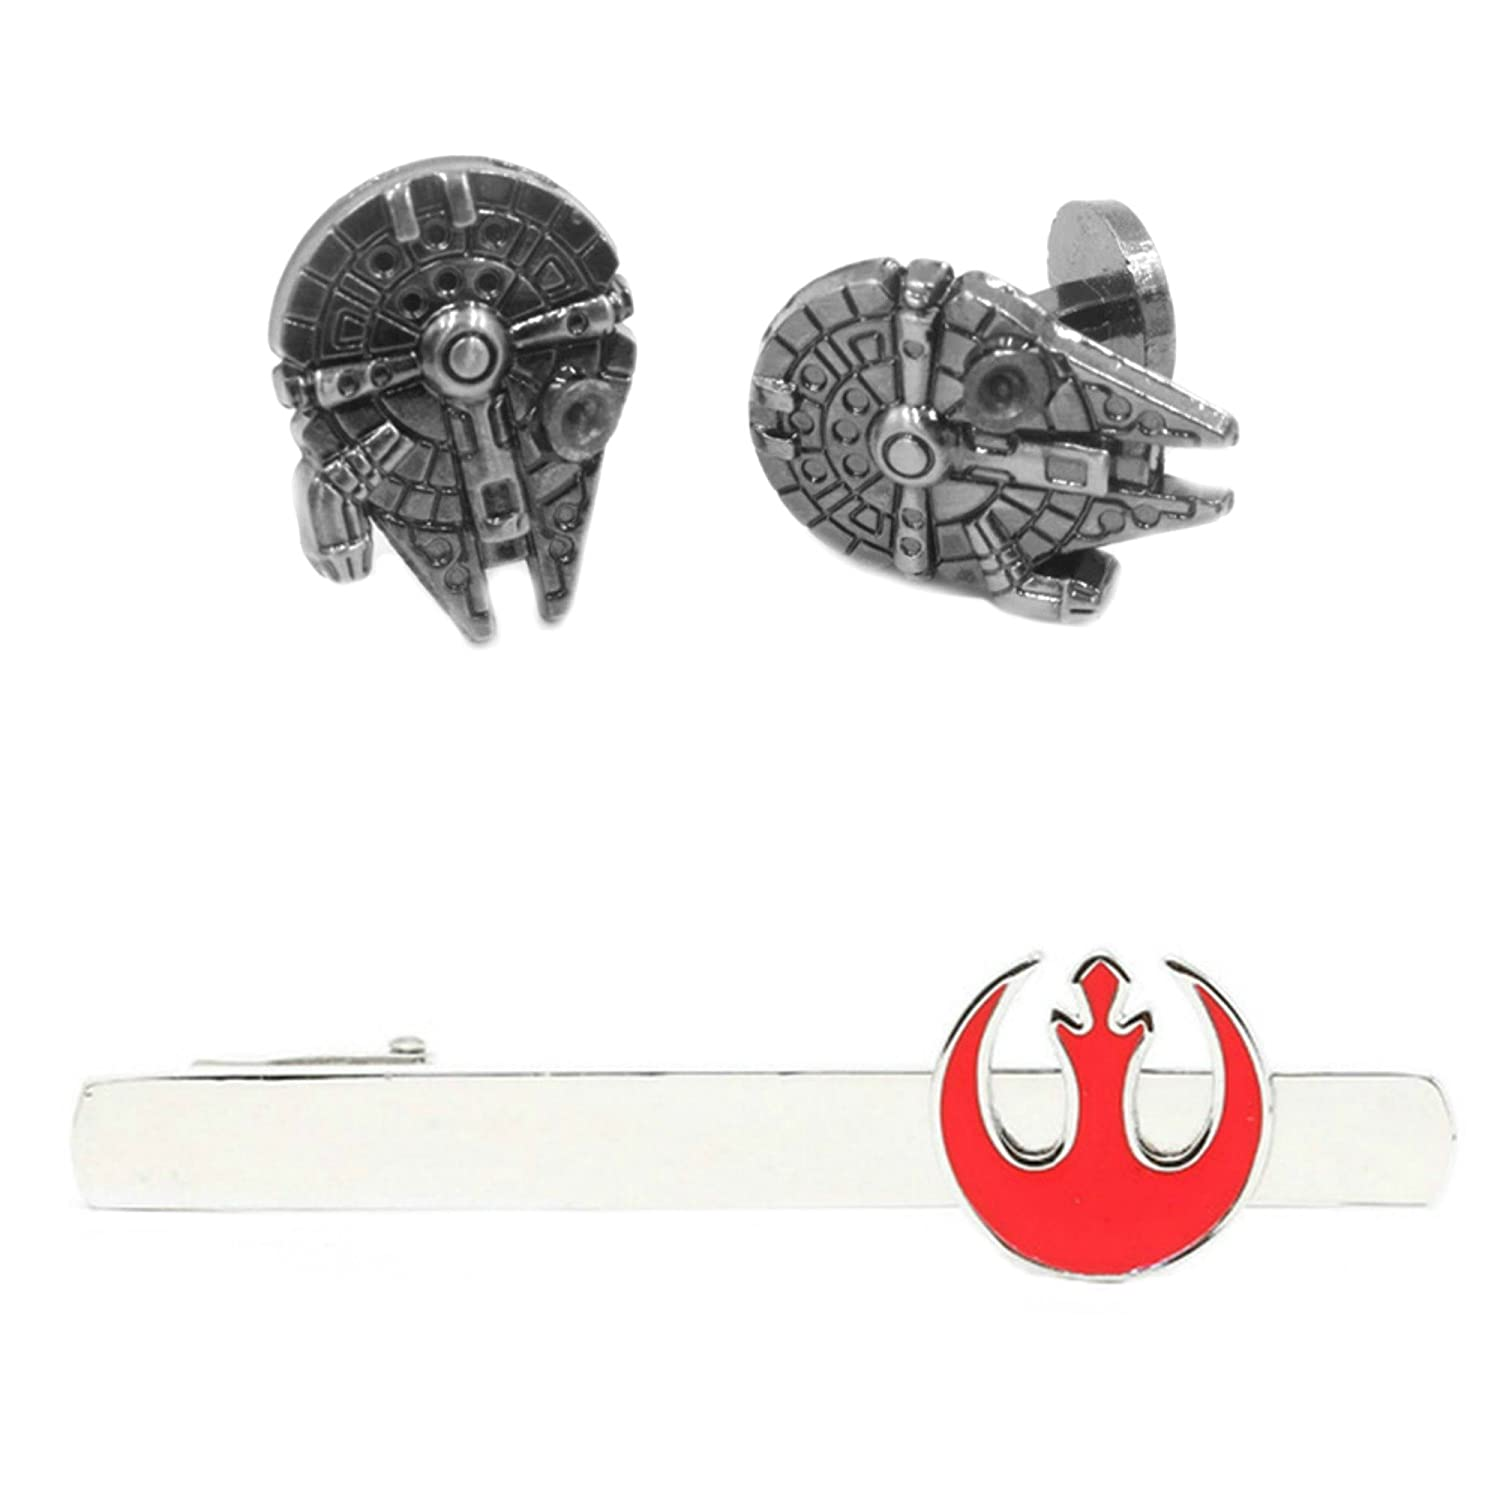 Outlander Millenium Falcon Cufflink & Rebel Tiebar - New 2018 Star Wars Movies - Set of 2 Wedding Logo w/Gift Box Outlander Brand